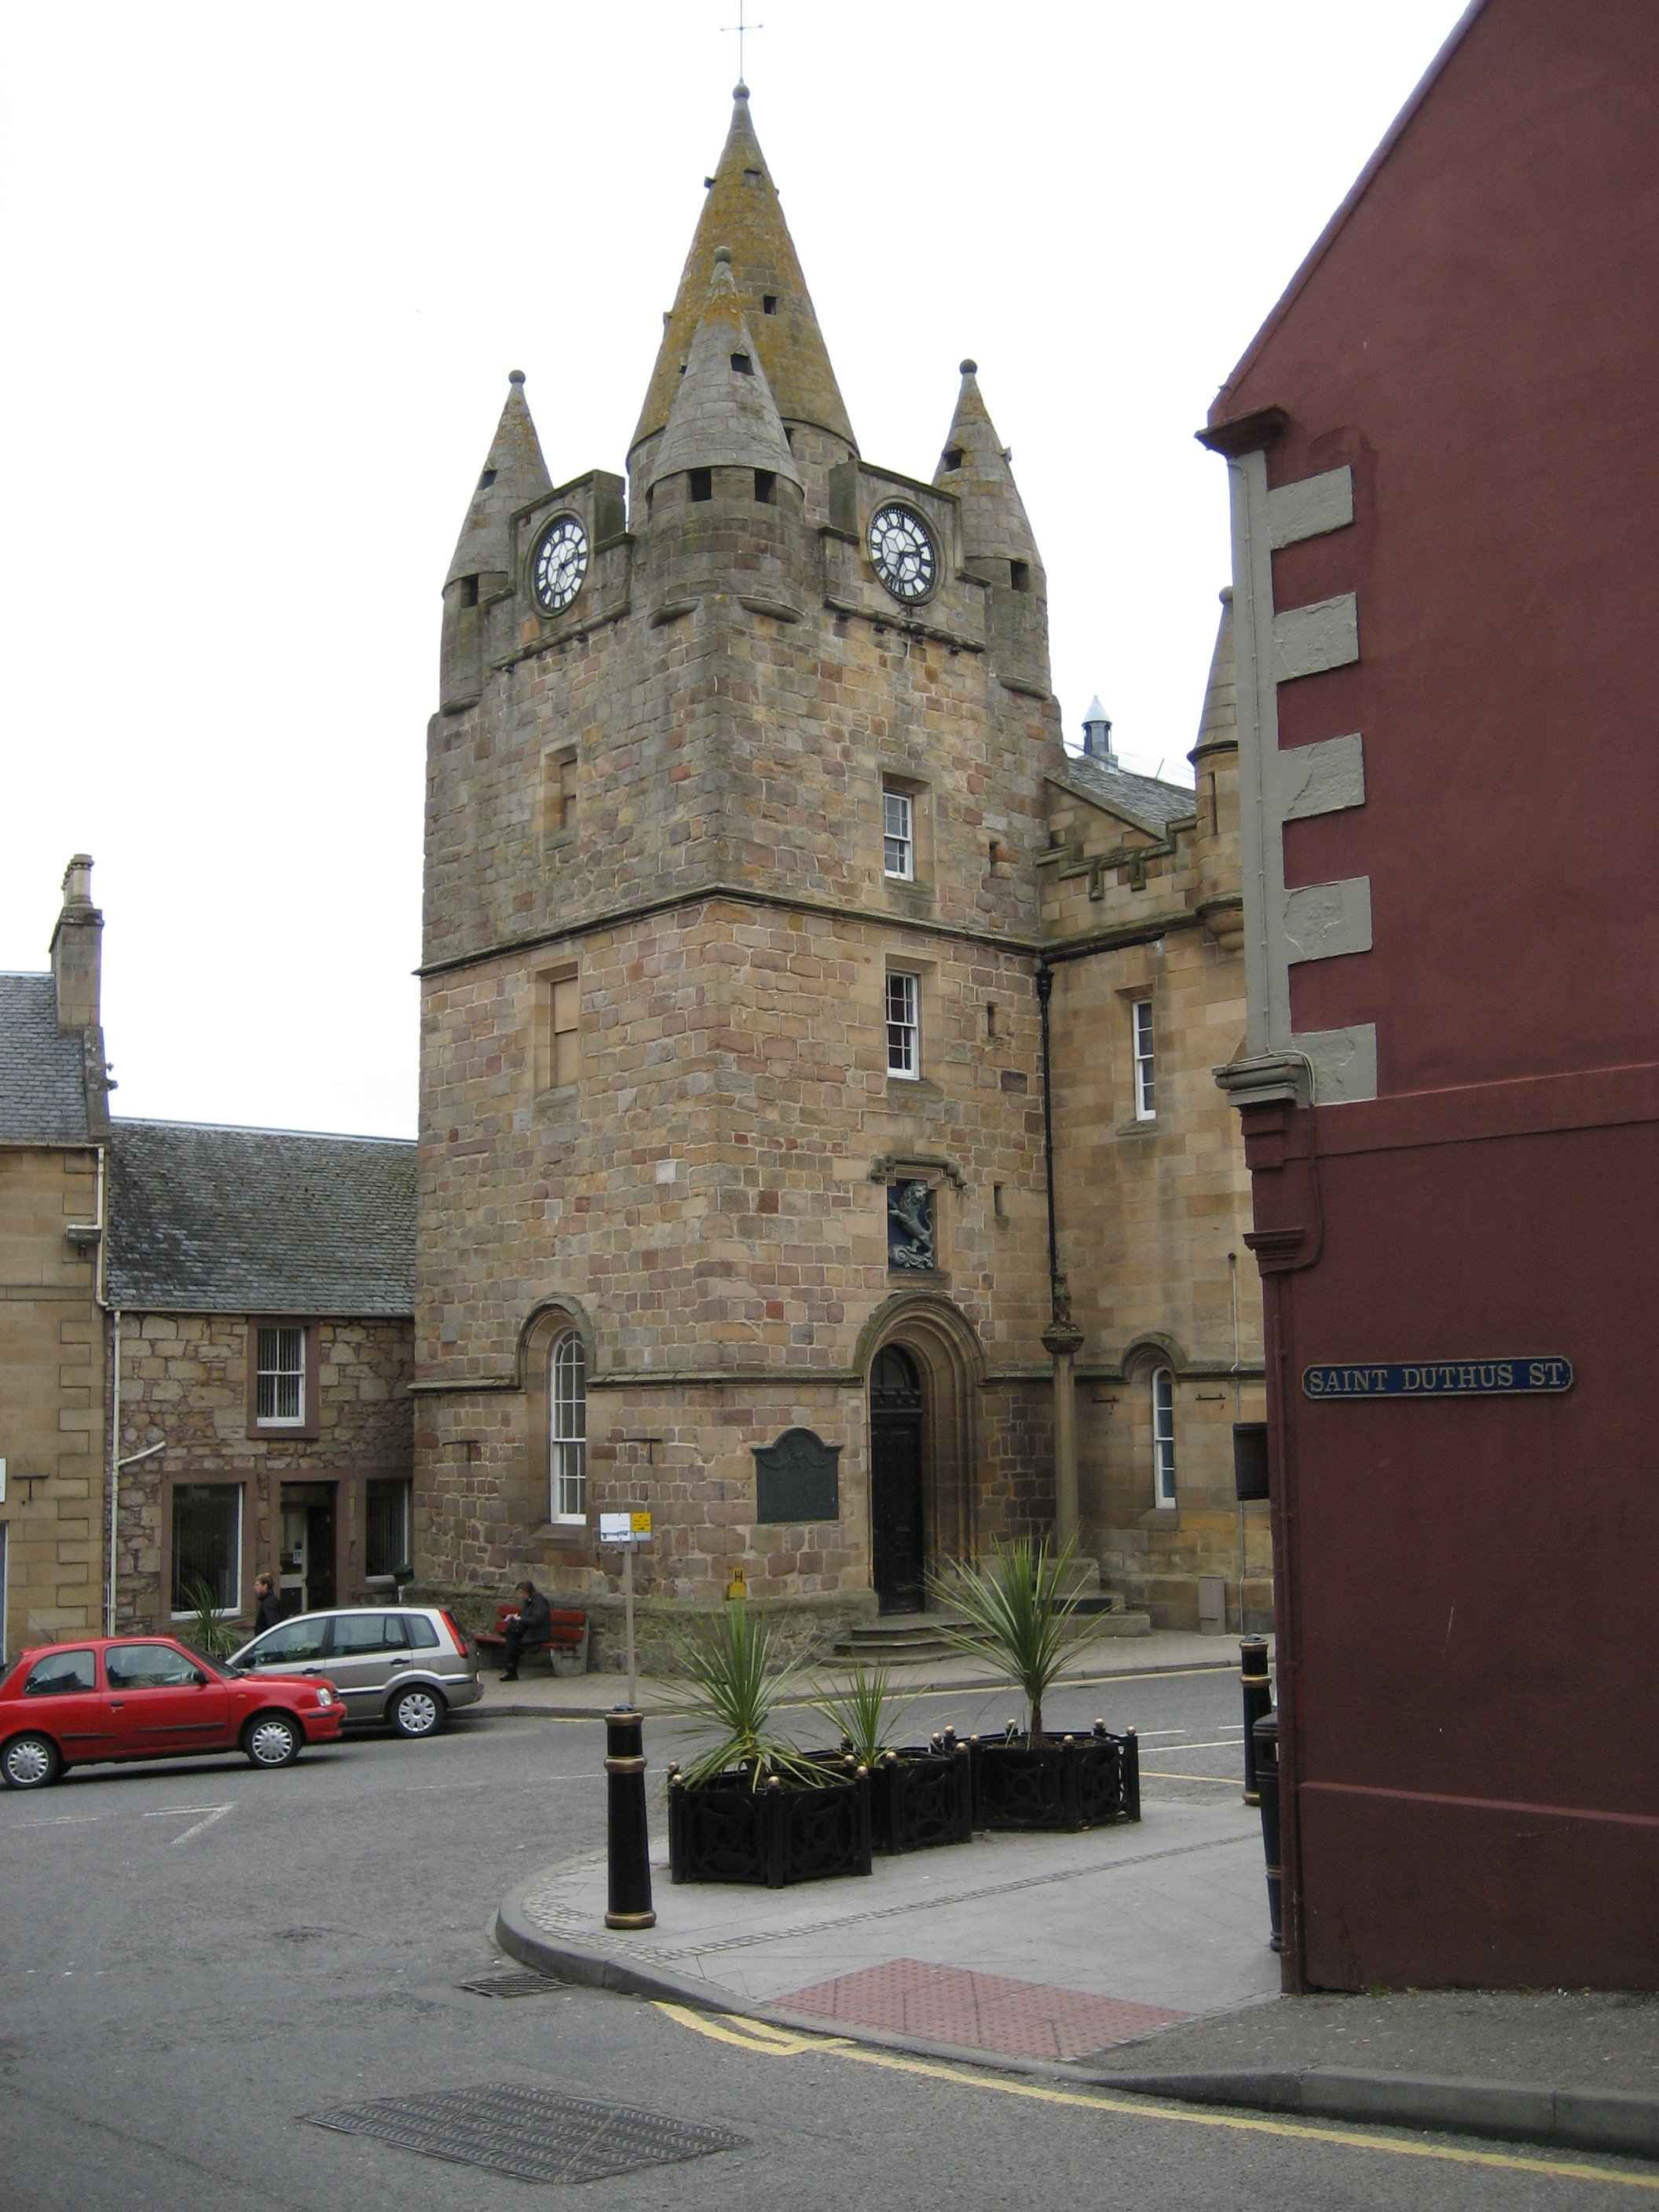 Tain tolbooth